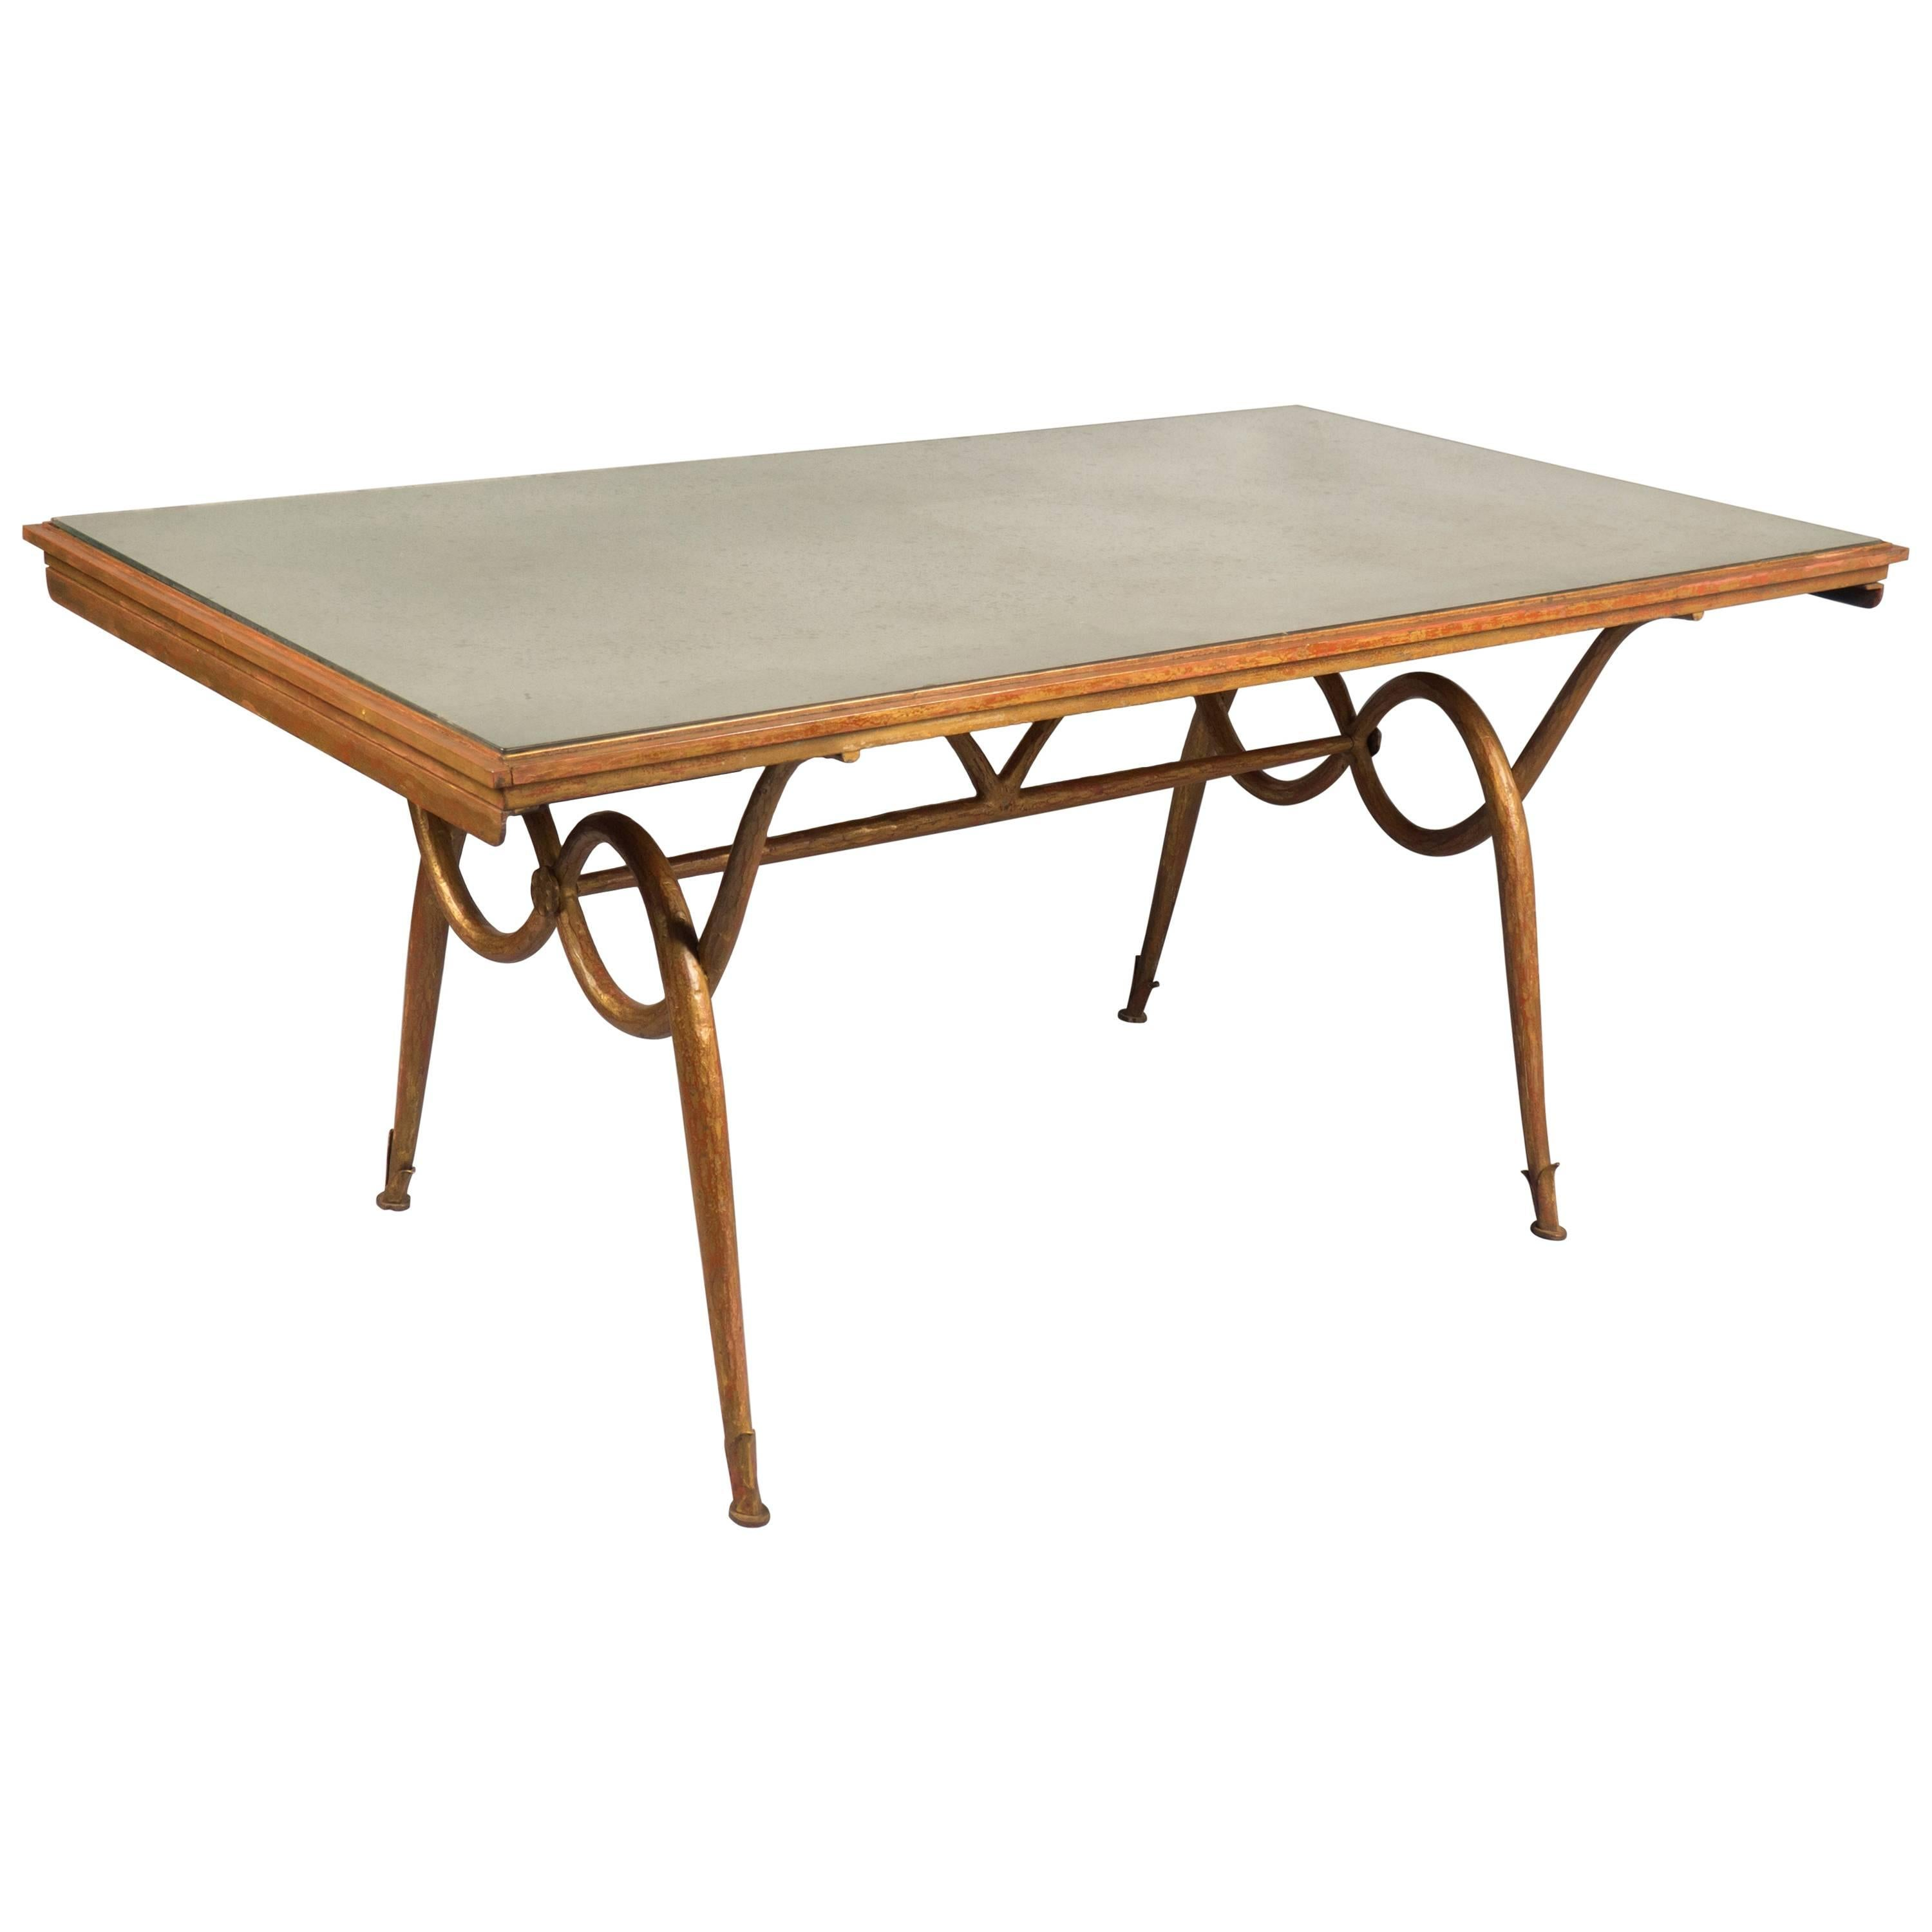 Gilded Iron Dining Table by René Drouet, France, 1940s